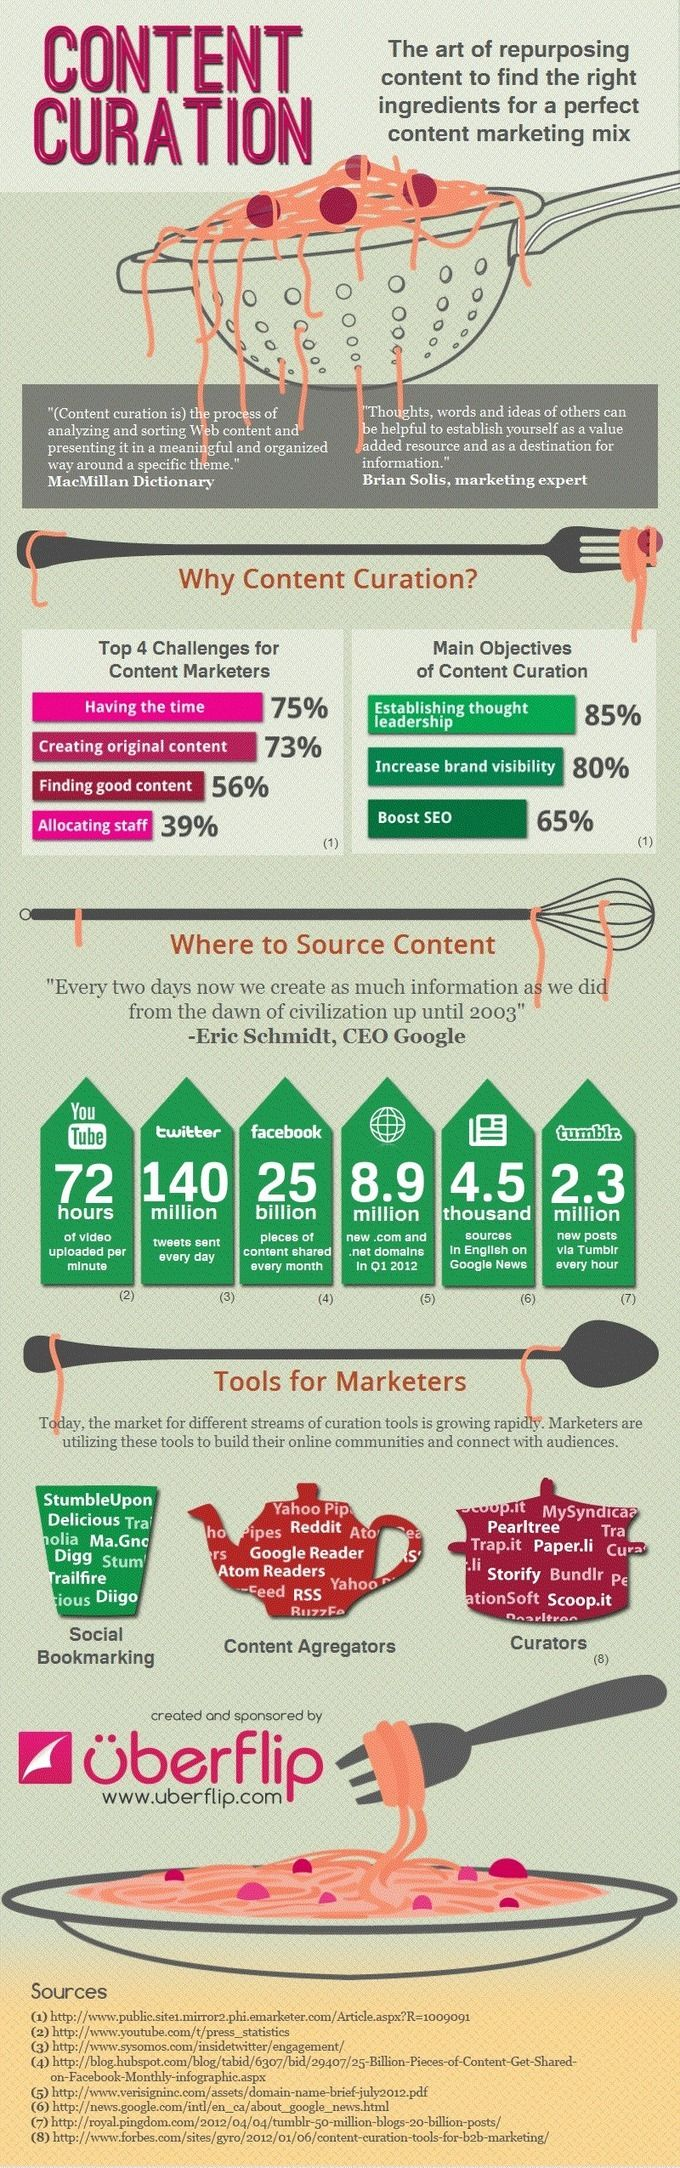 How To Use Curation to Create the Best Content Marketing Mix [Infographic]